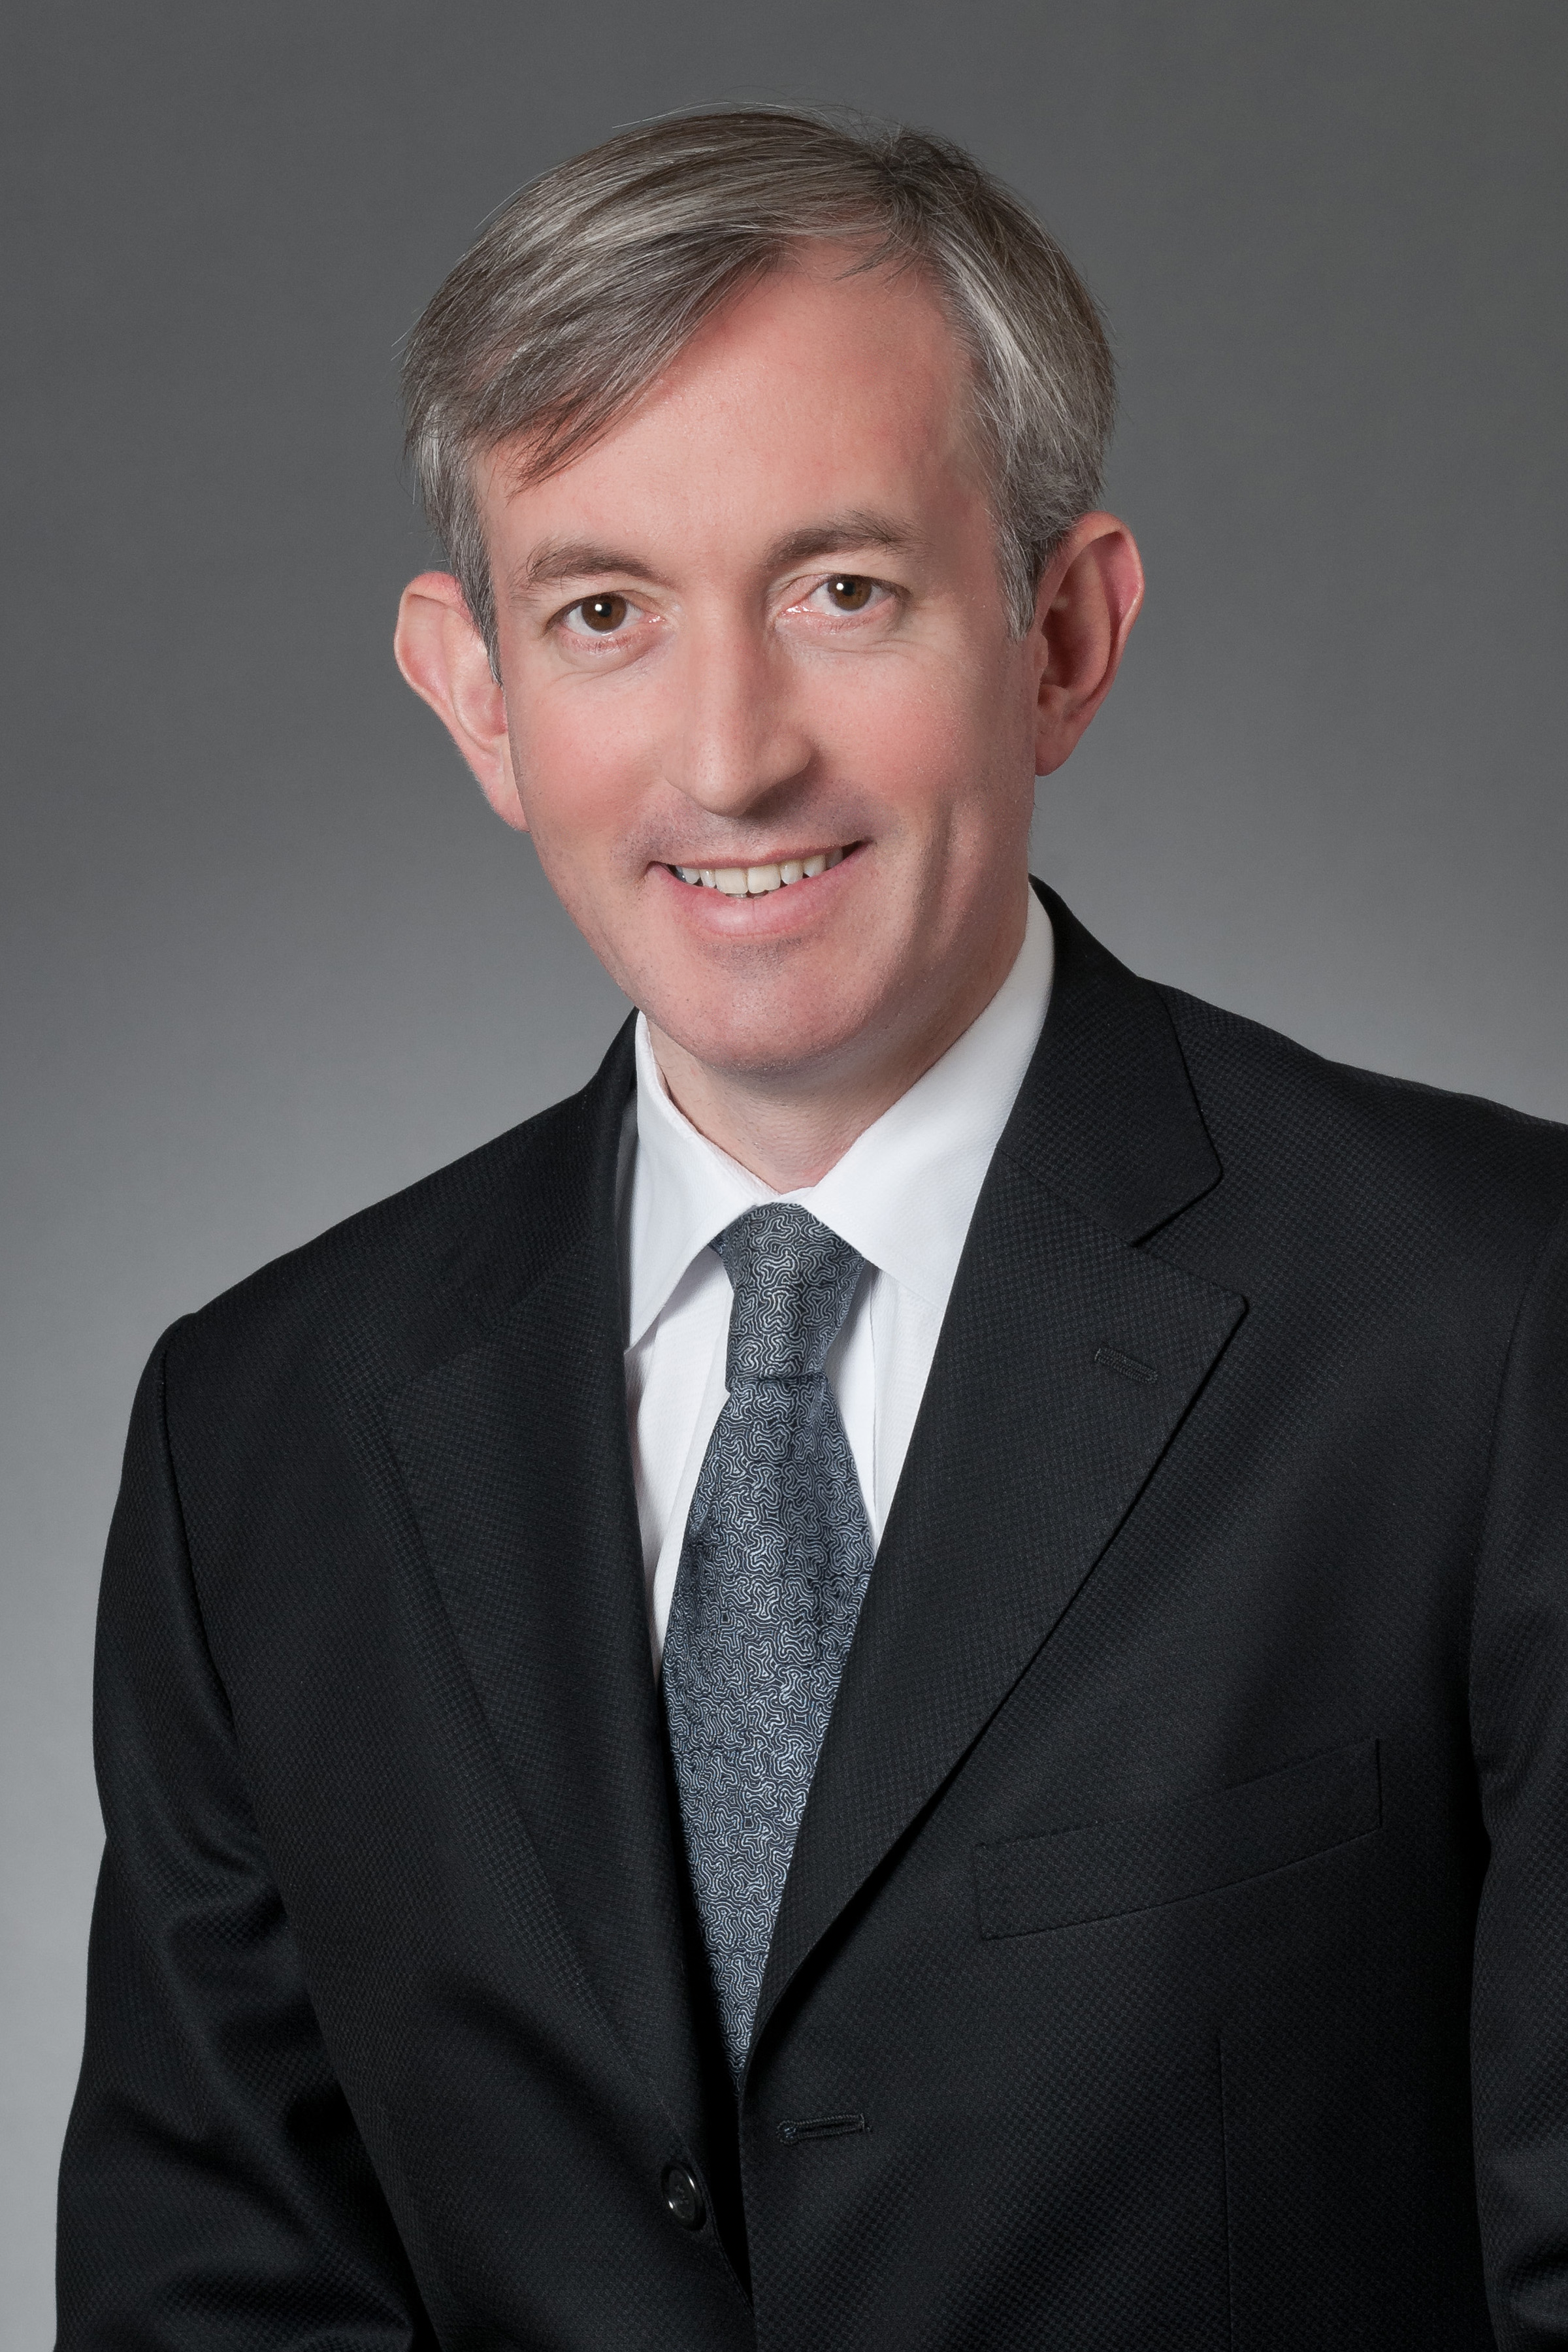 Roger Healy